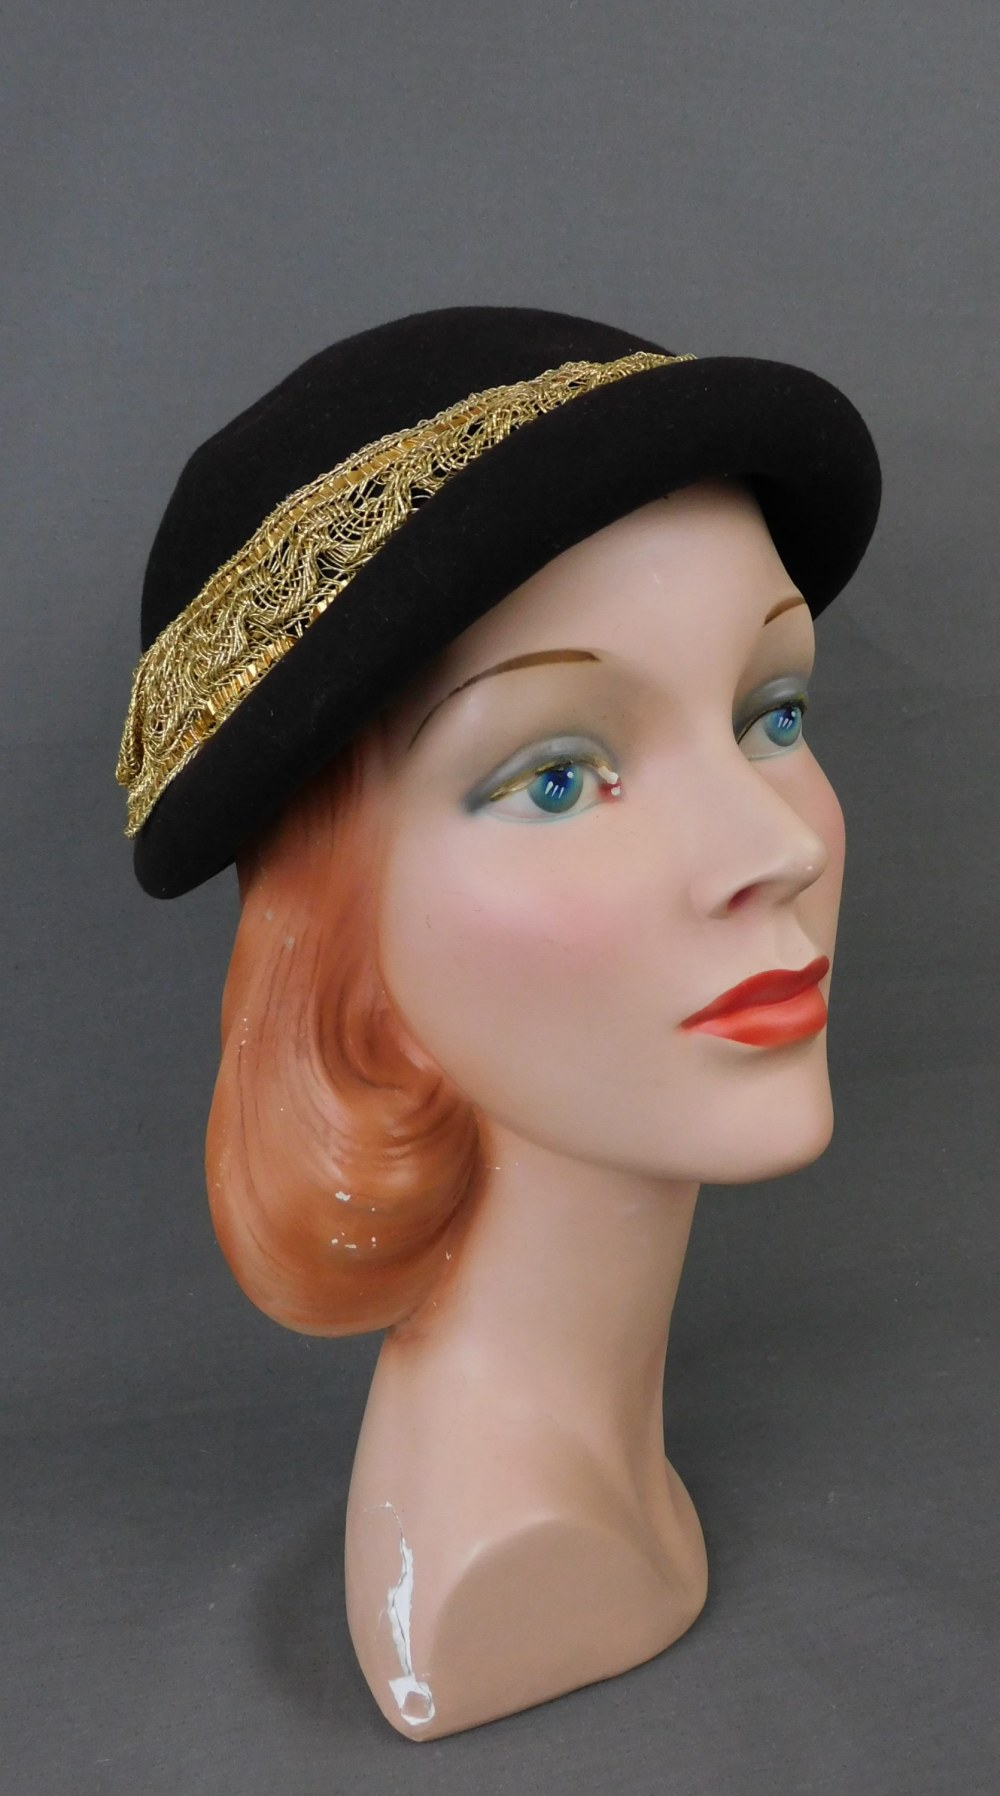 Vintage Brown Felt Hat with Gold Trim, fits 22 inch head 1940s